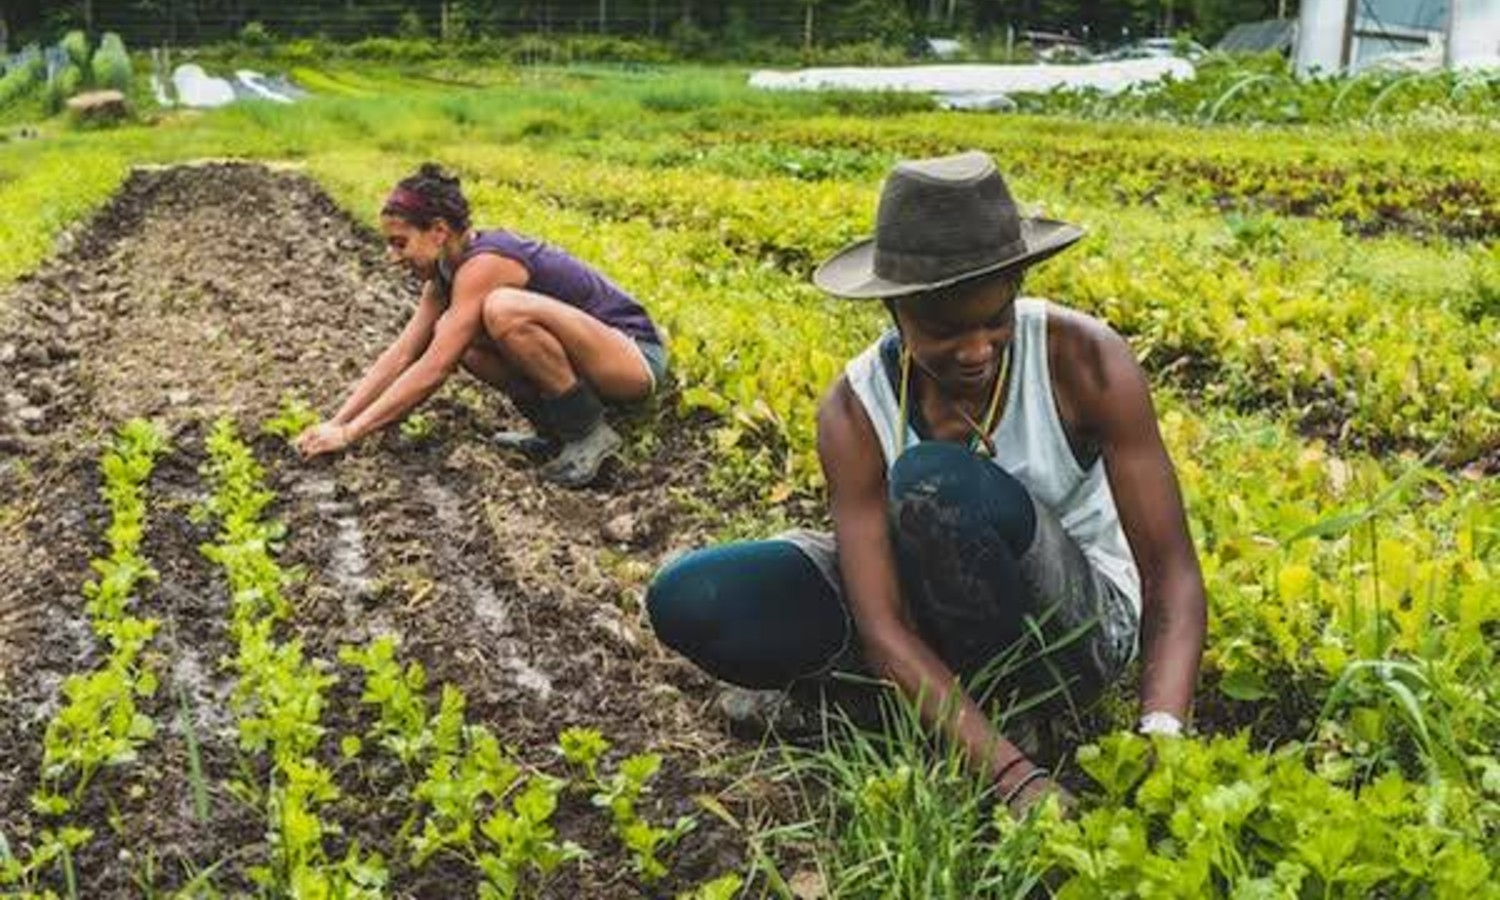 On Juneteenth, a holiday recognizing the end of slavery, A Growing Culture is holding a daylong broadcast to elevate Black voices in the food system.